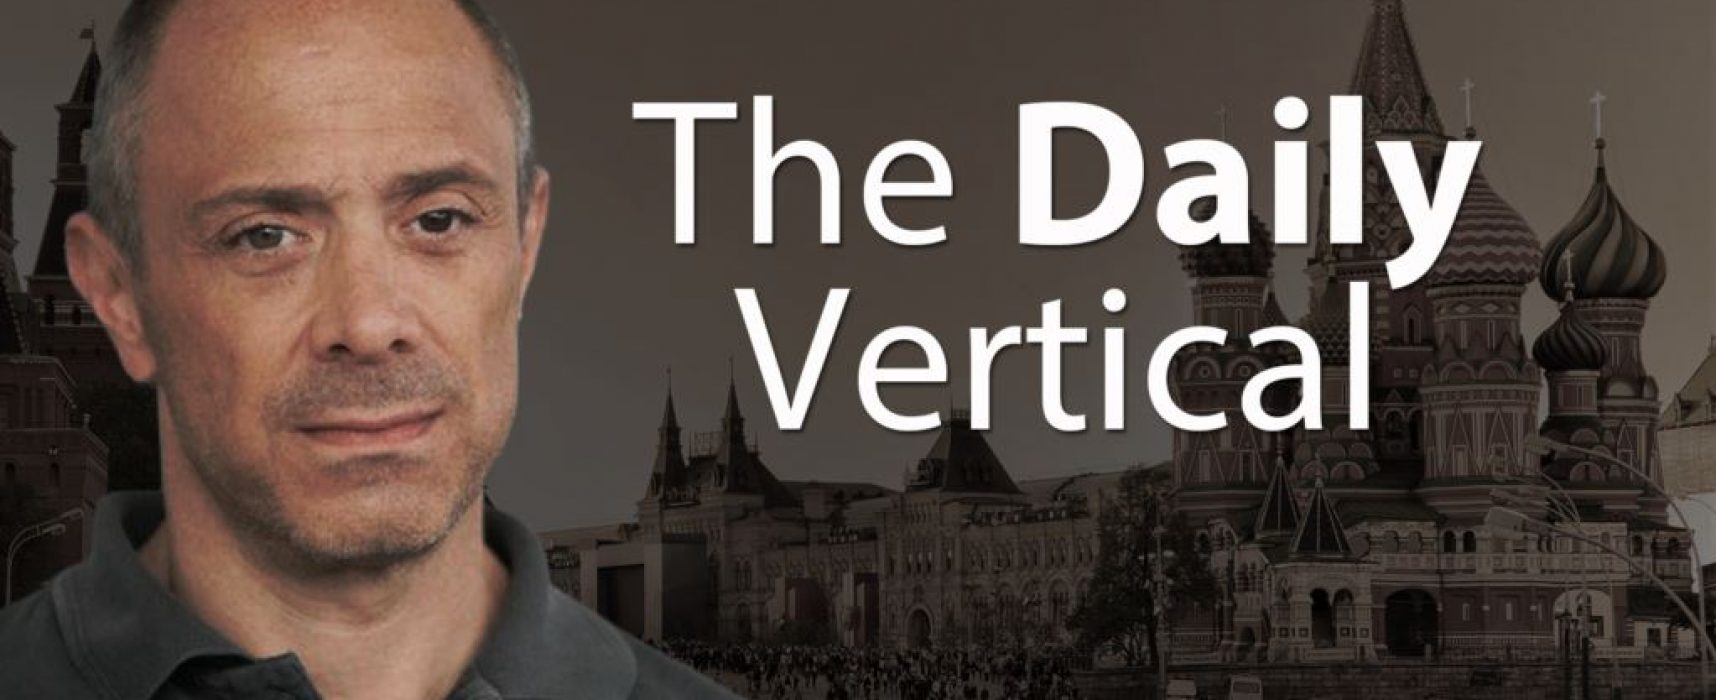 The Daily Vertical: The limits of dark power (Transcript)